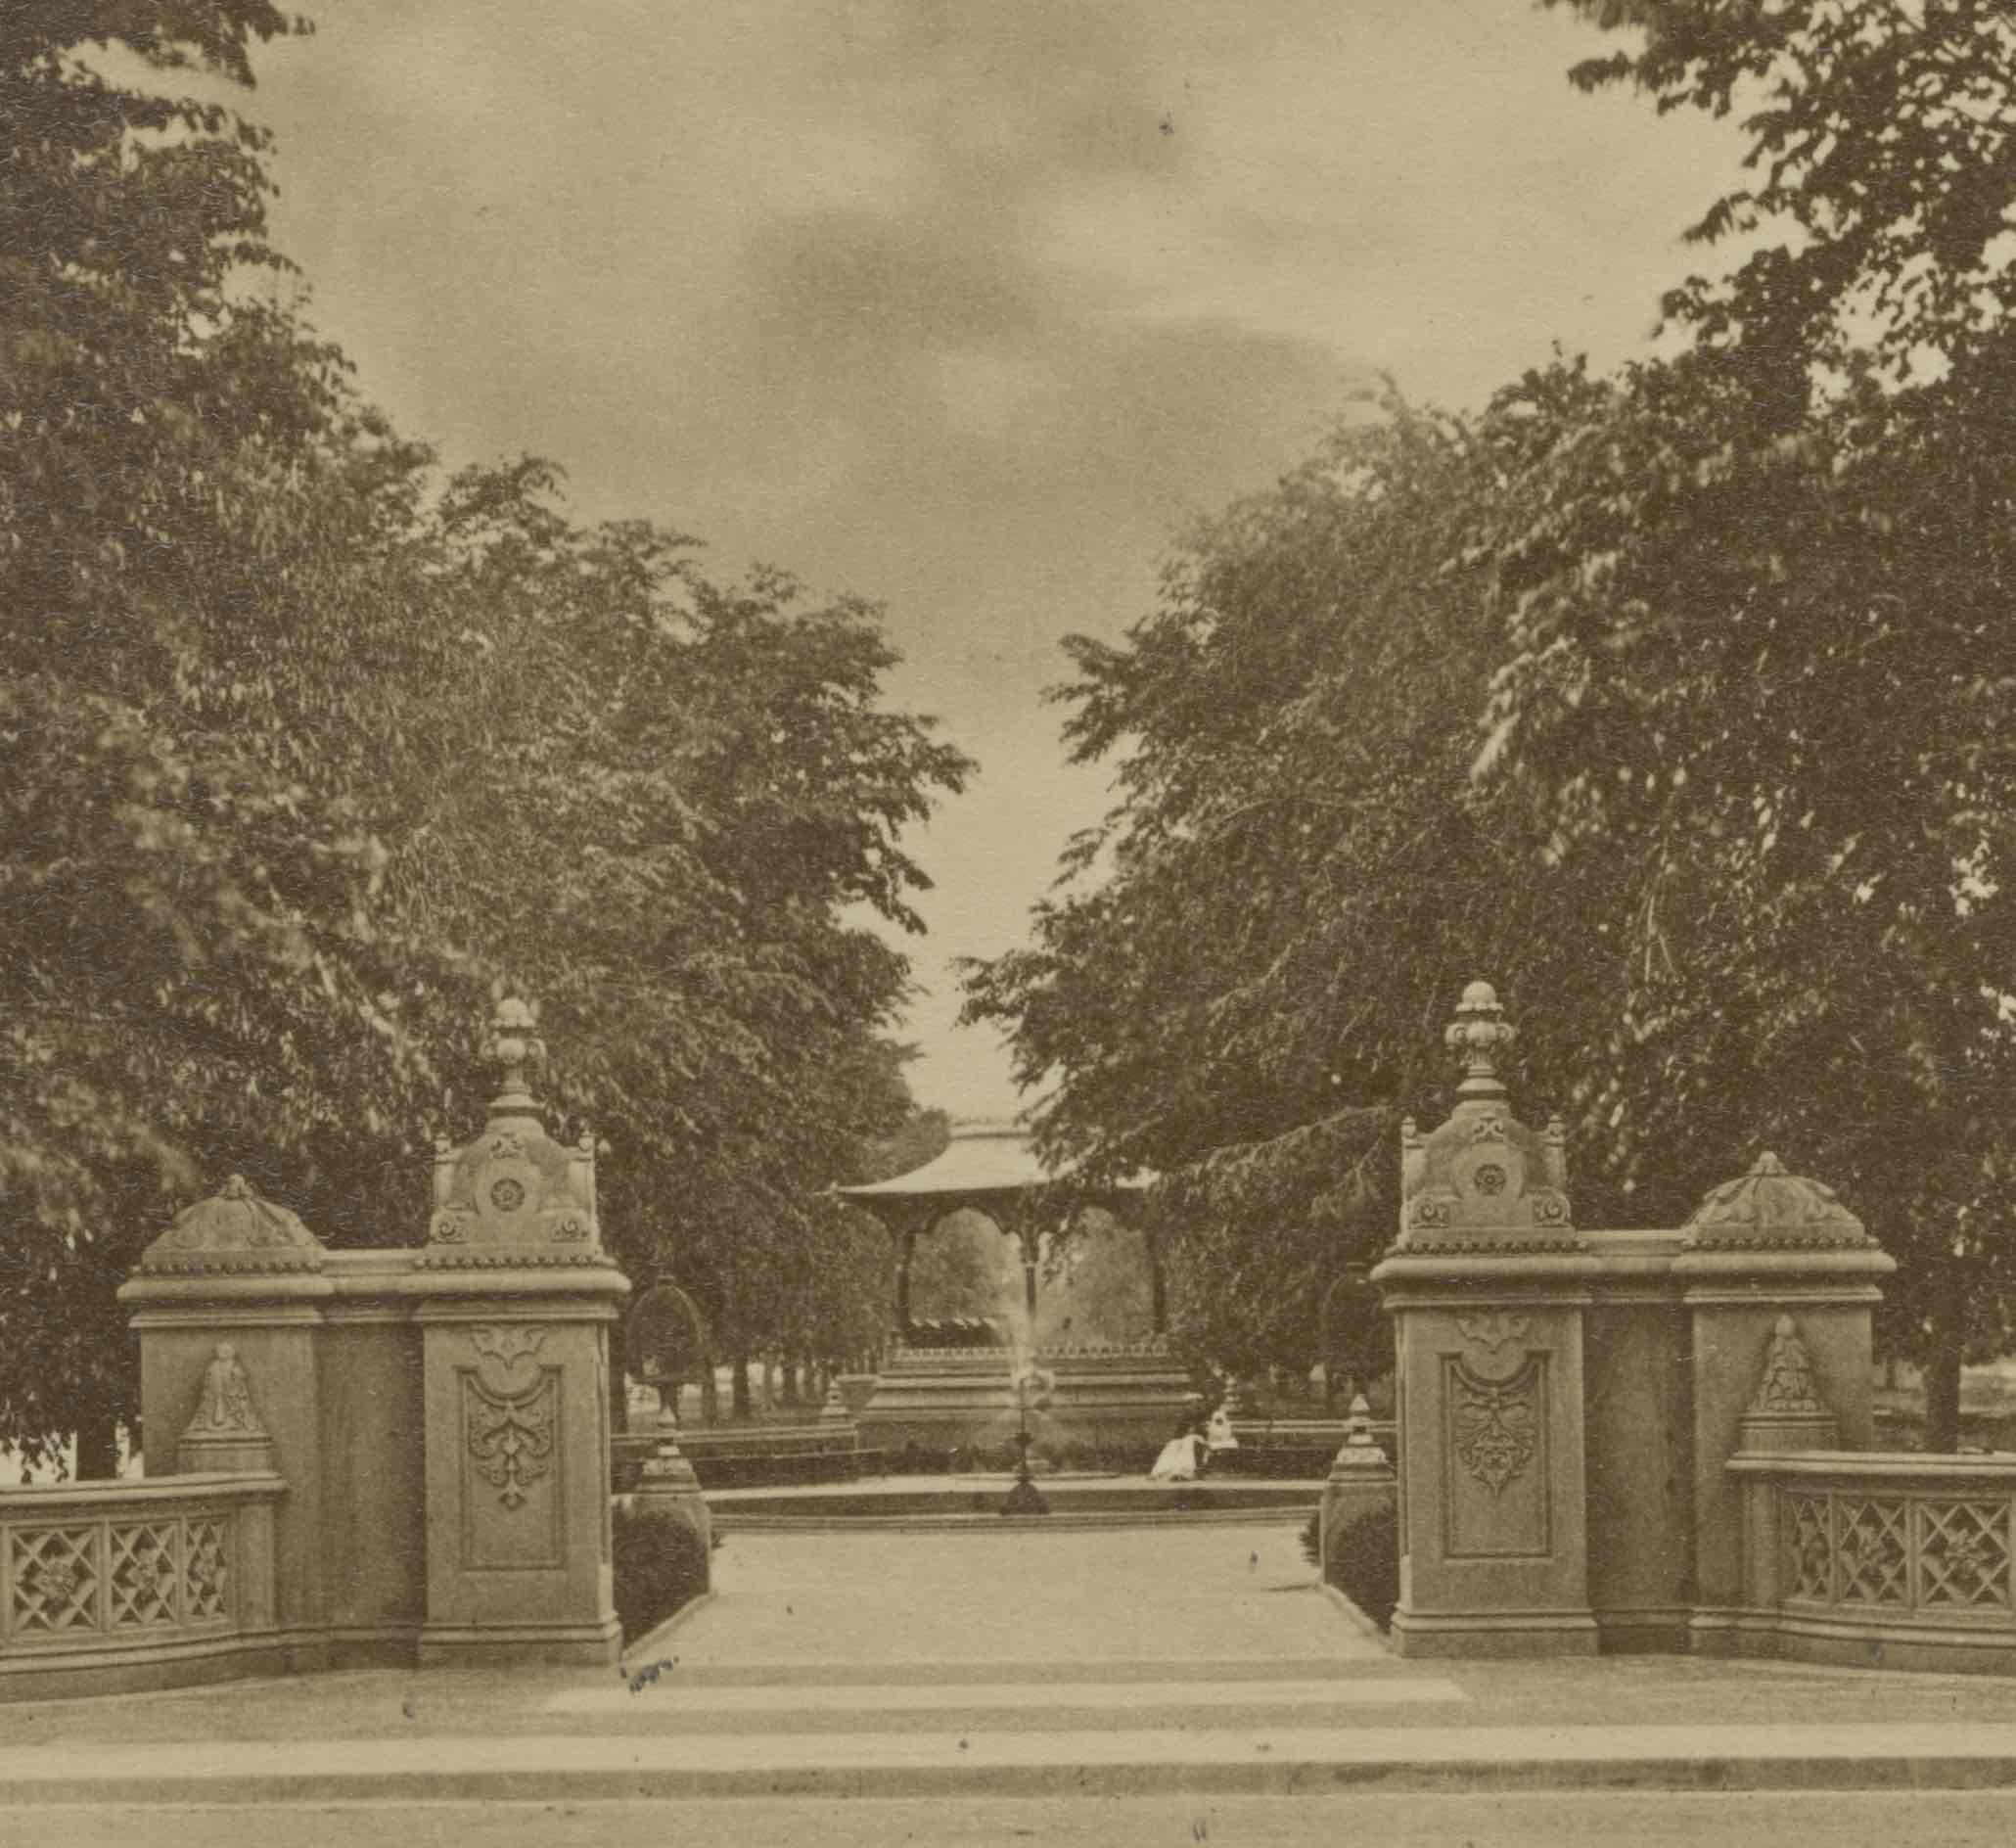 Here the Music Pavilion can be seen in its original location at the north end of the mall just behind a small decorative fountain that lead toward to the Terrace. The Pavilion would later be moved further the south and the fountain would be removed altogether. Department of Parks Collection, NYC Municipal Archives.